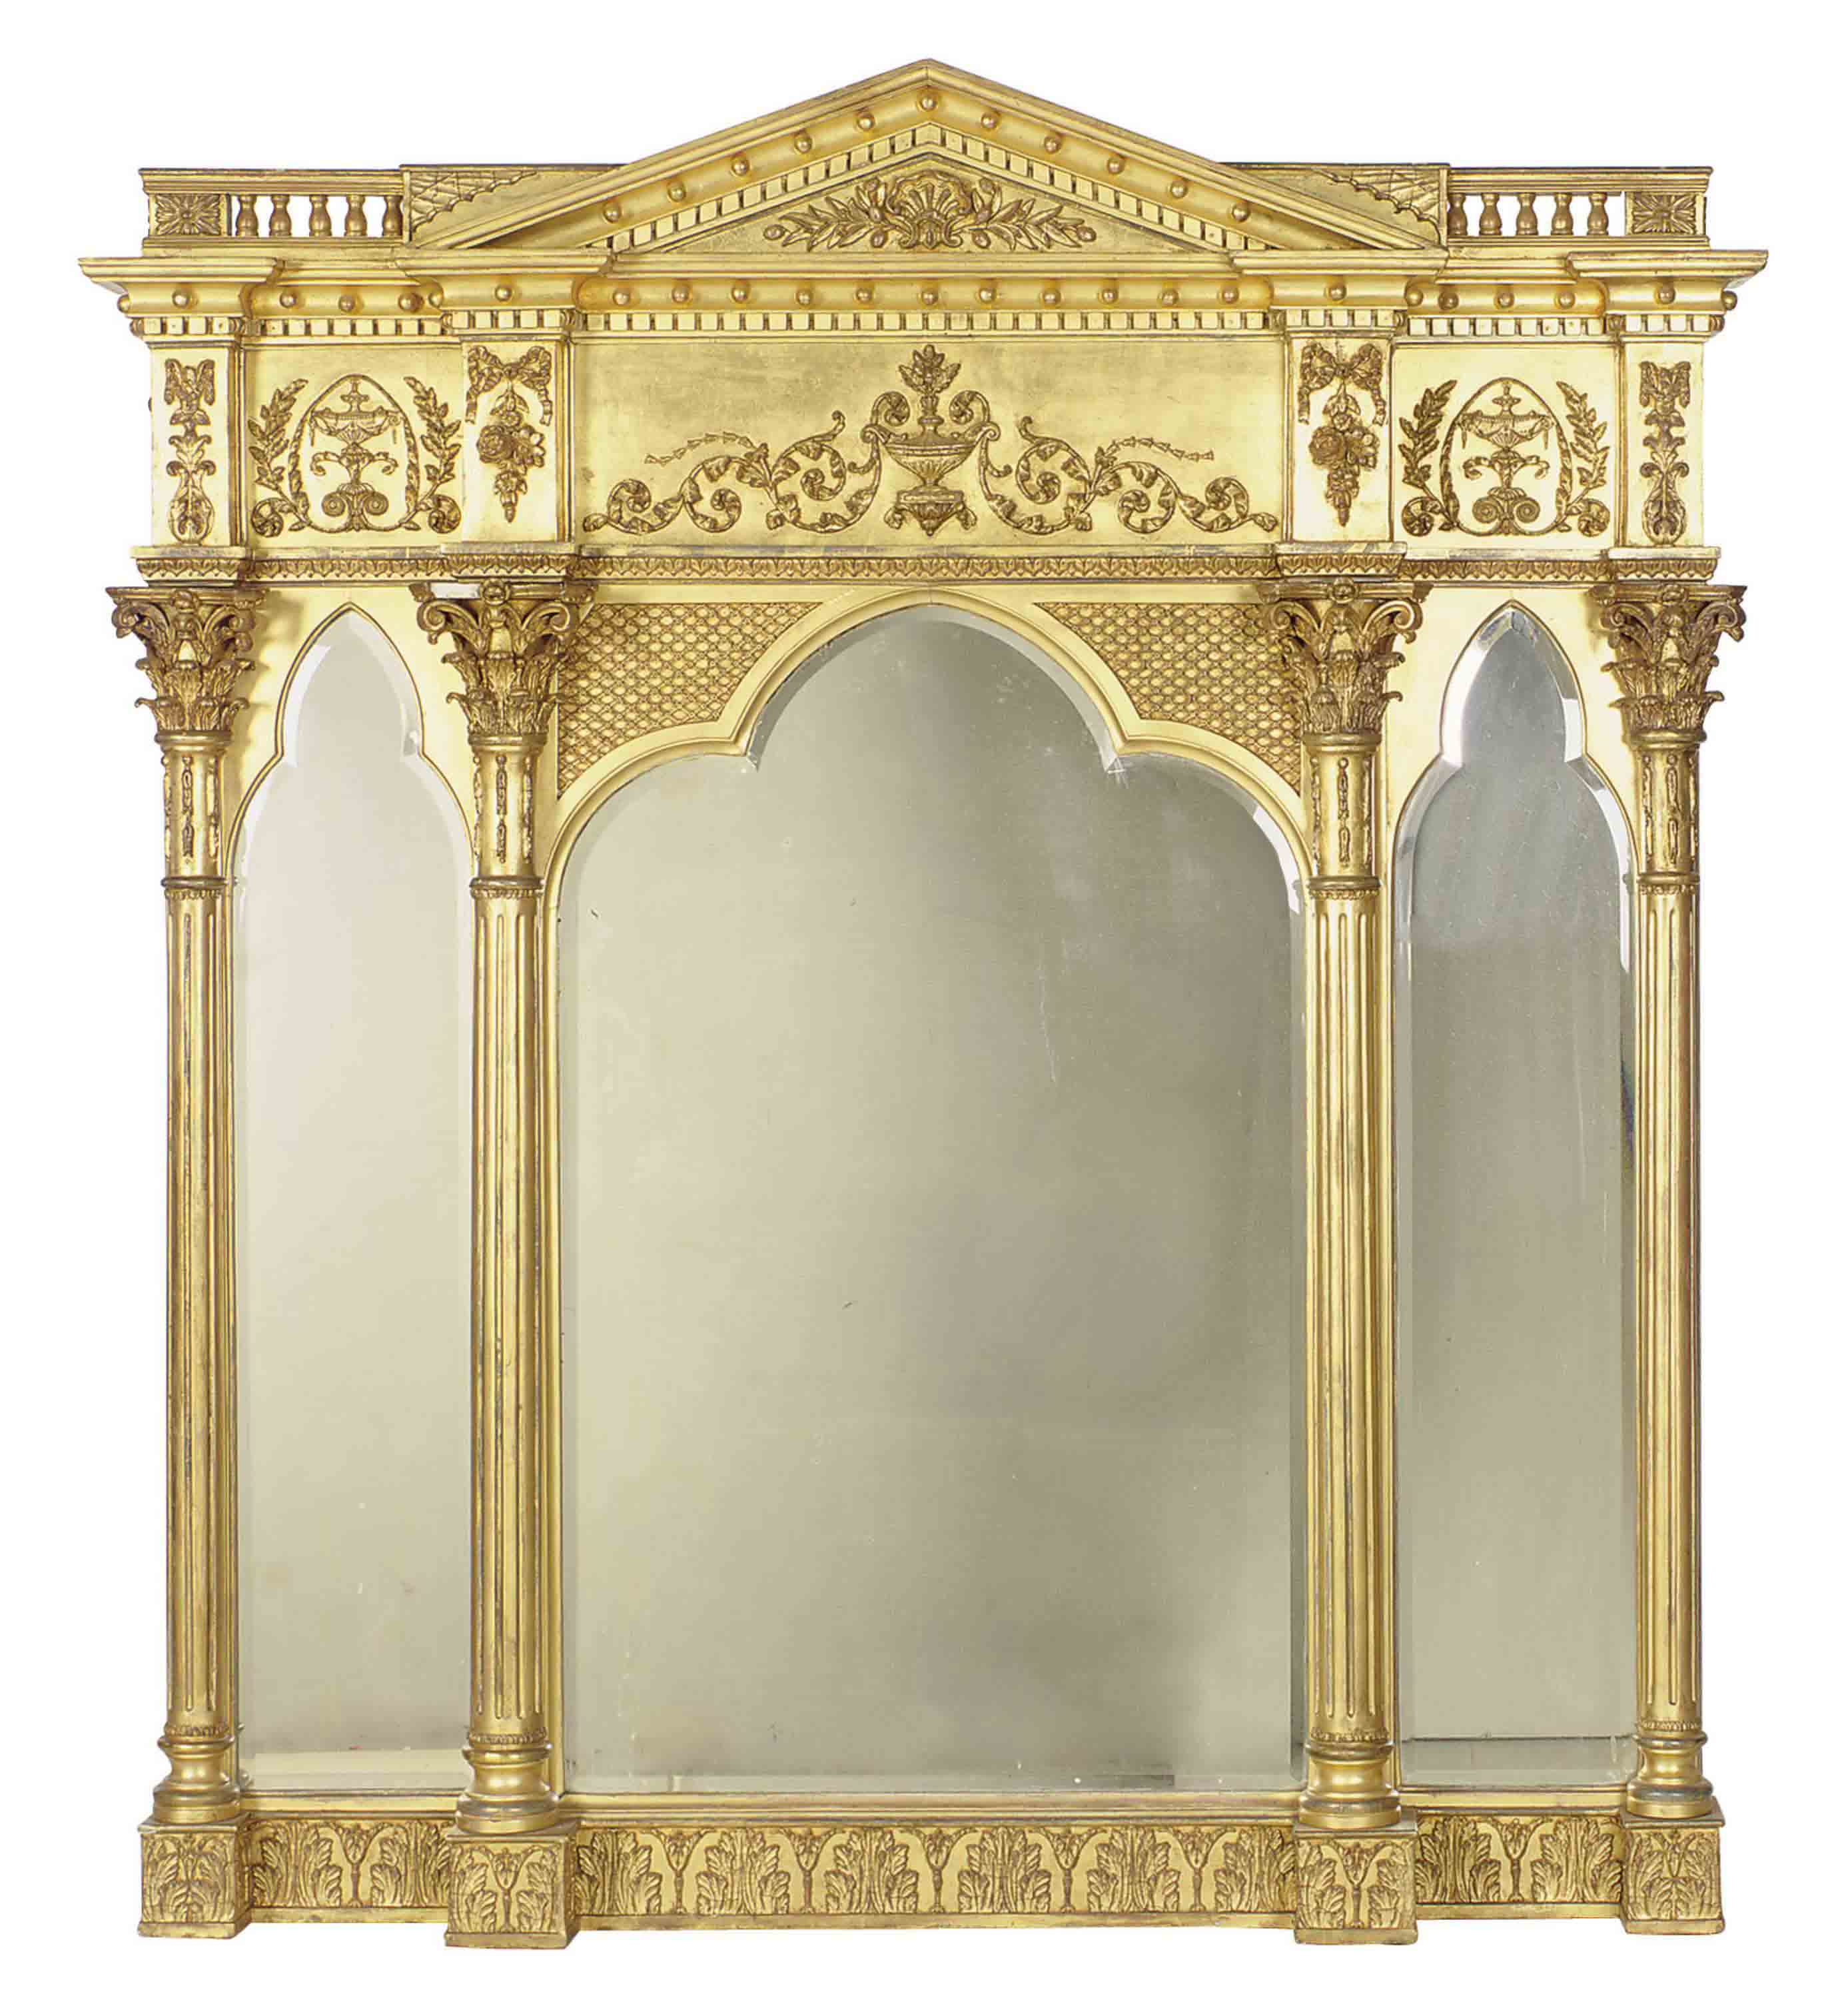 A LARGE GILTWOOD AND GILT COMPOSITION TRIPARTITE MIRROR,